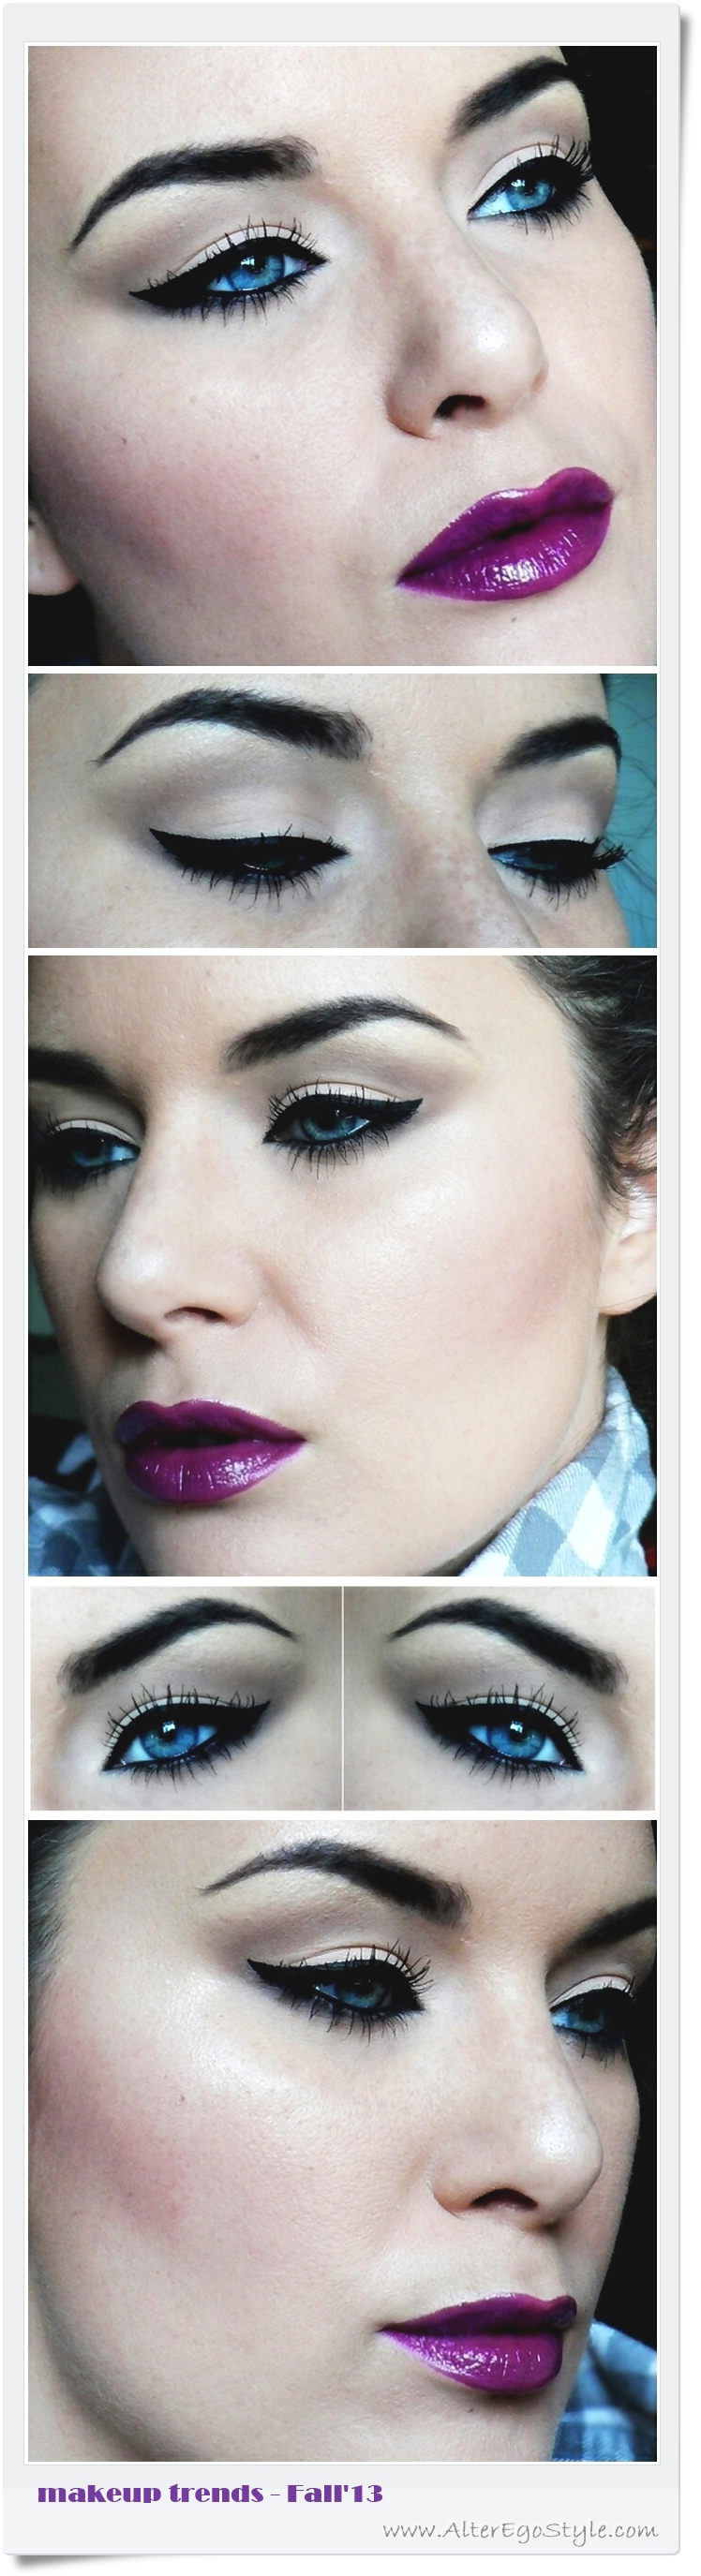 makeup-fall2013-alteregostyle